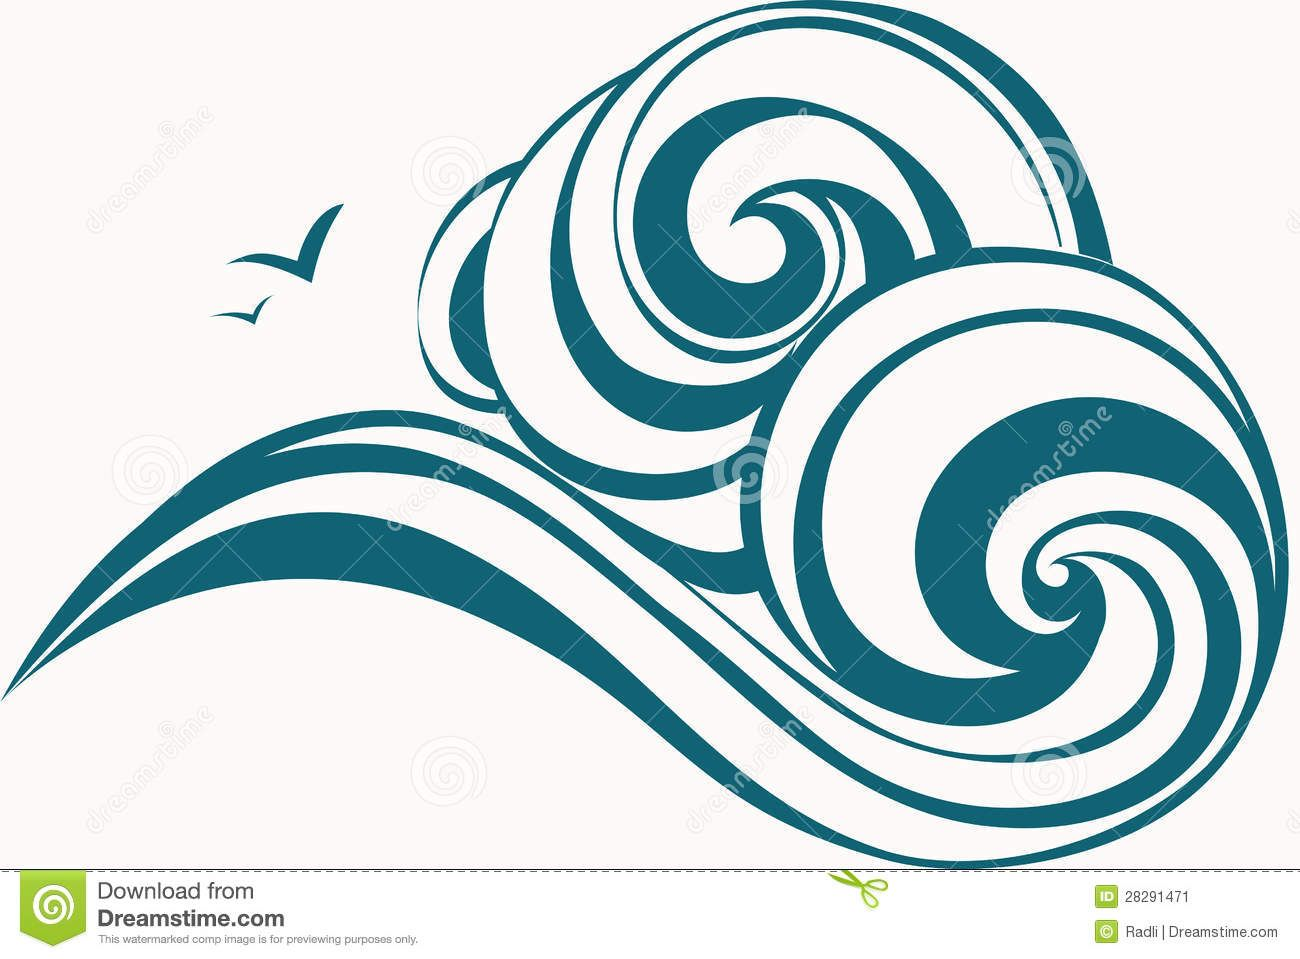 Wave clipart image royalty free Ocean Waves Clipart | Clipart Panda - Free Clipart Images ... royalty free